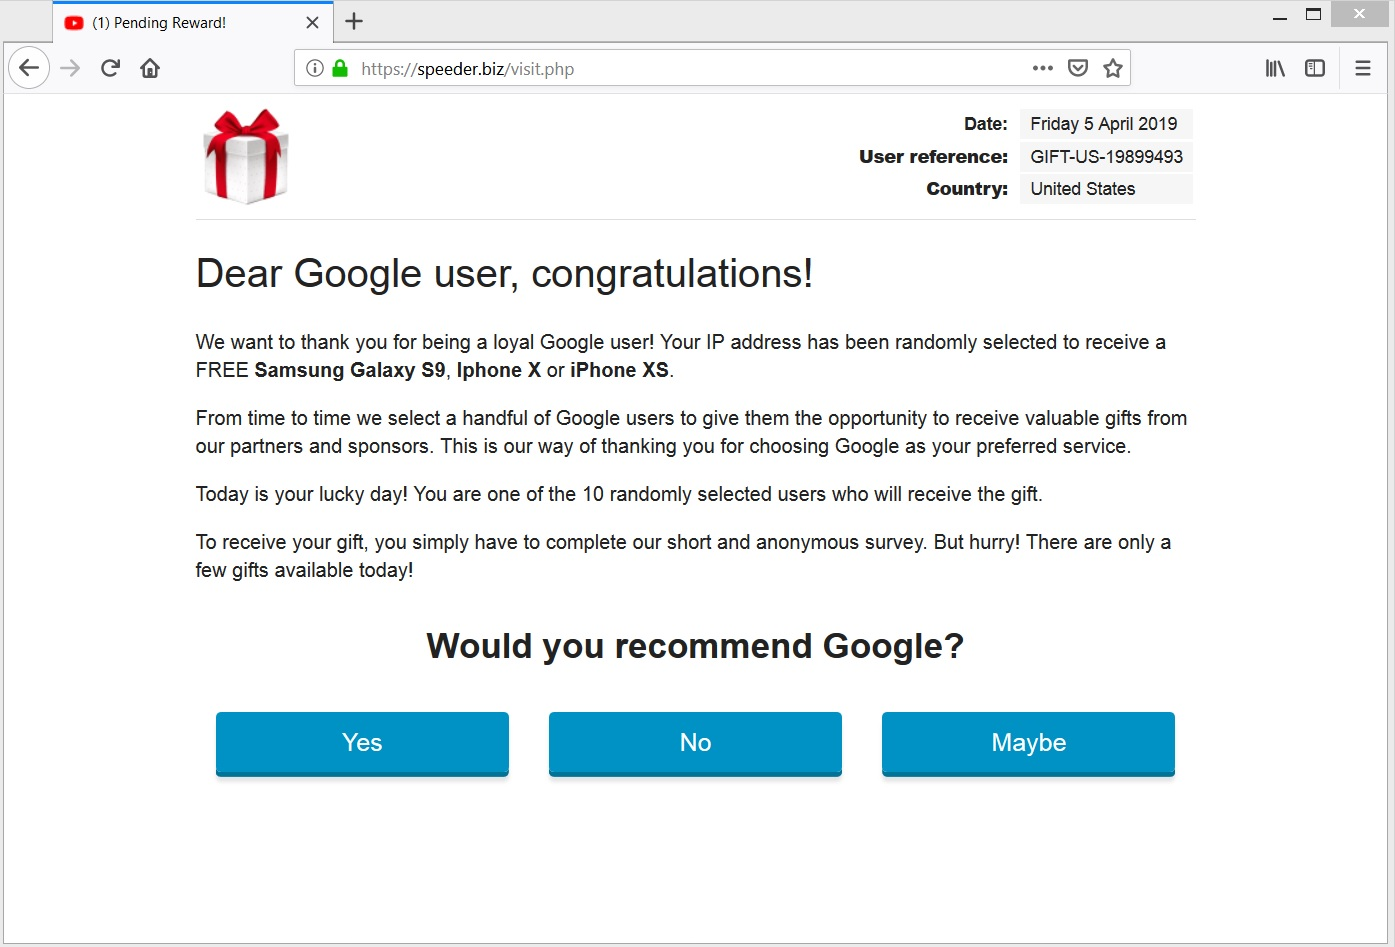 solvability biz dear google user congratulations browser redirect scam sensorstechforum